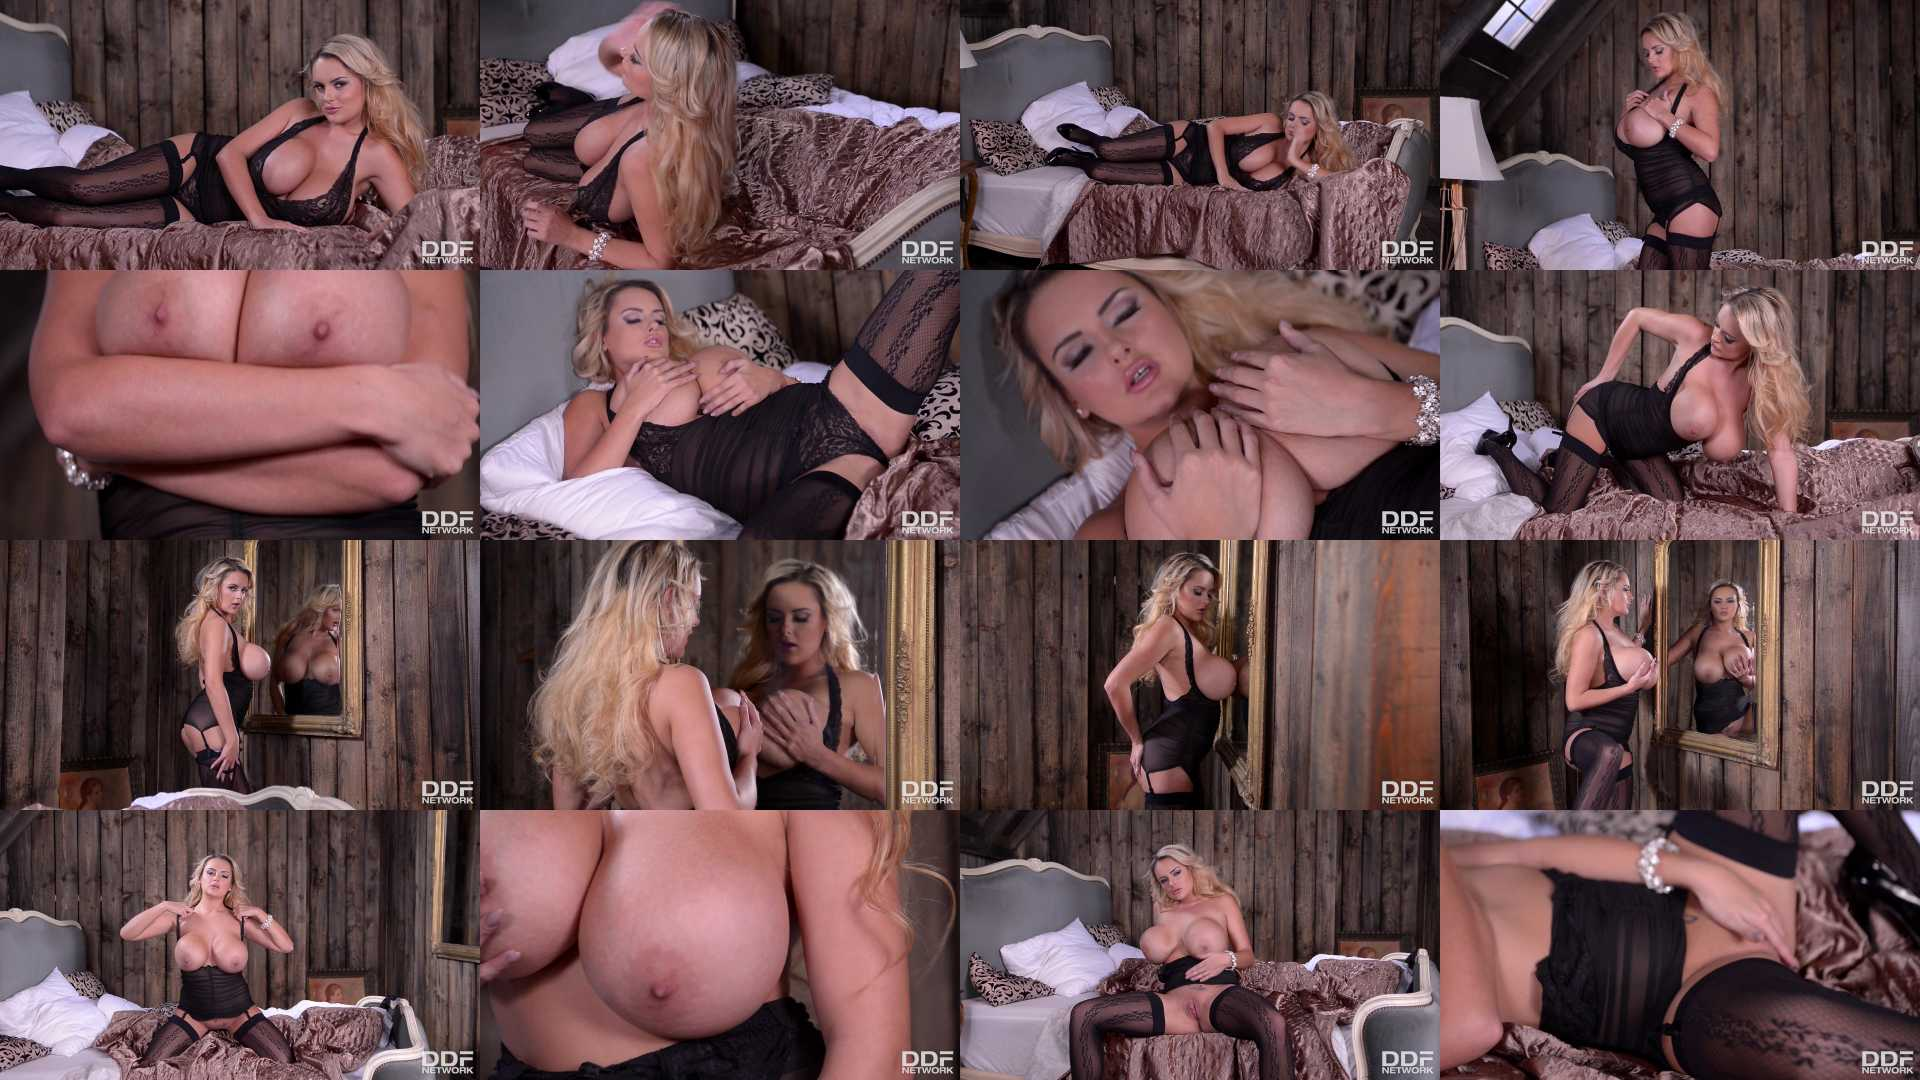 Katie T Aka Katiethornton in Big Titties and Bottom: Blonde